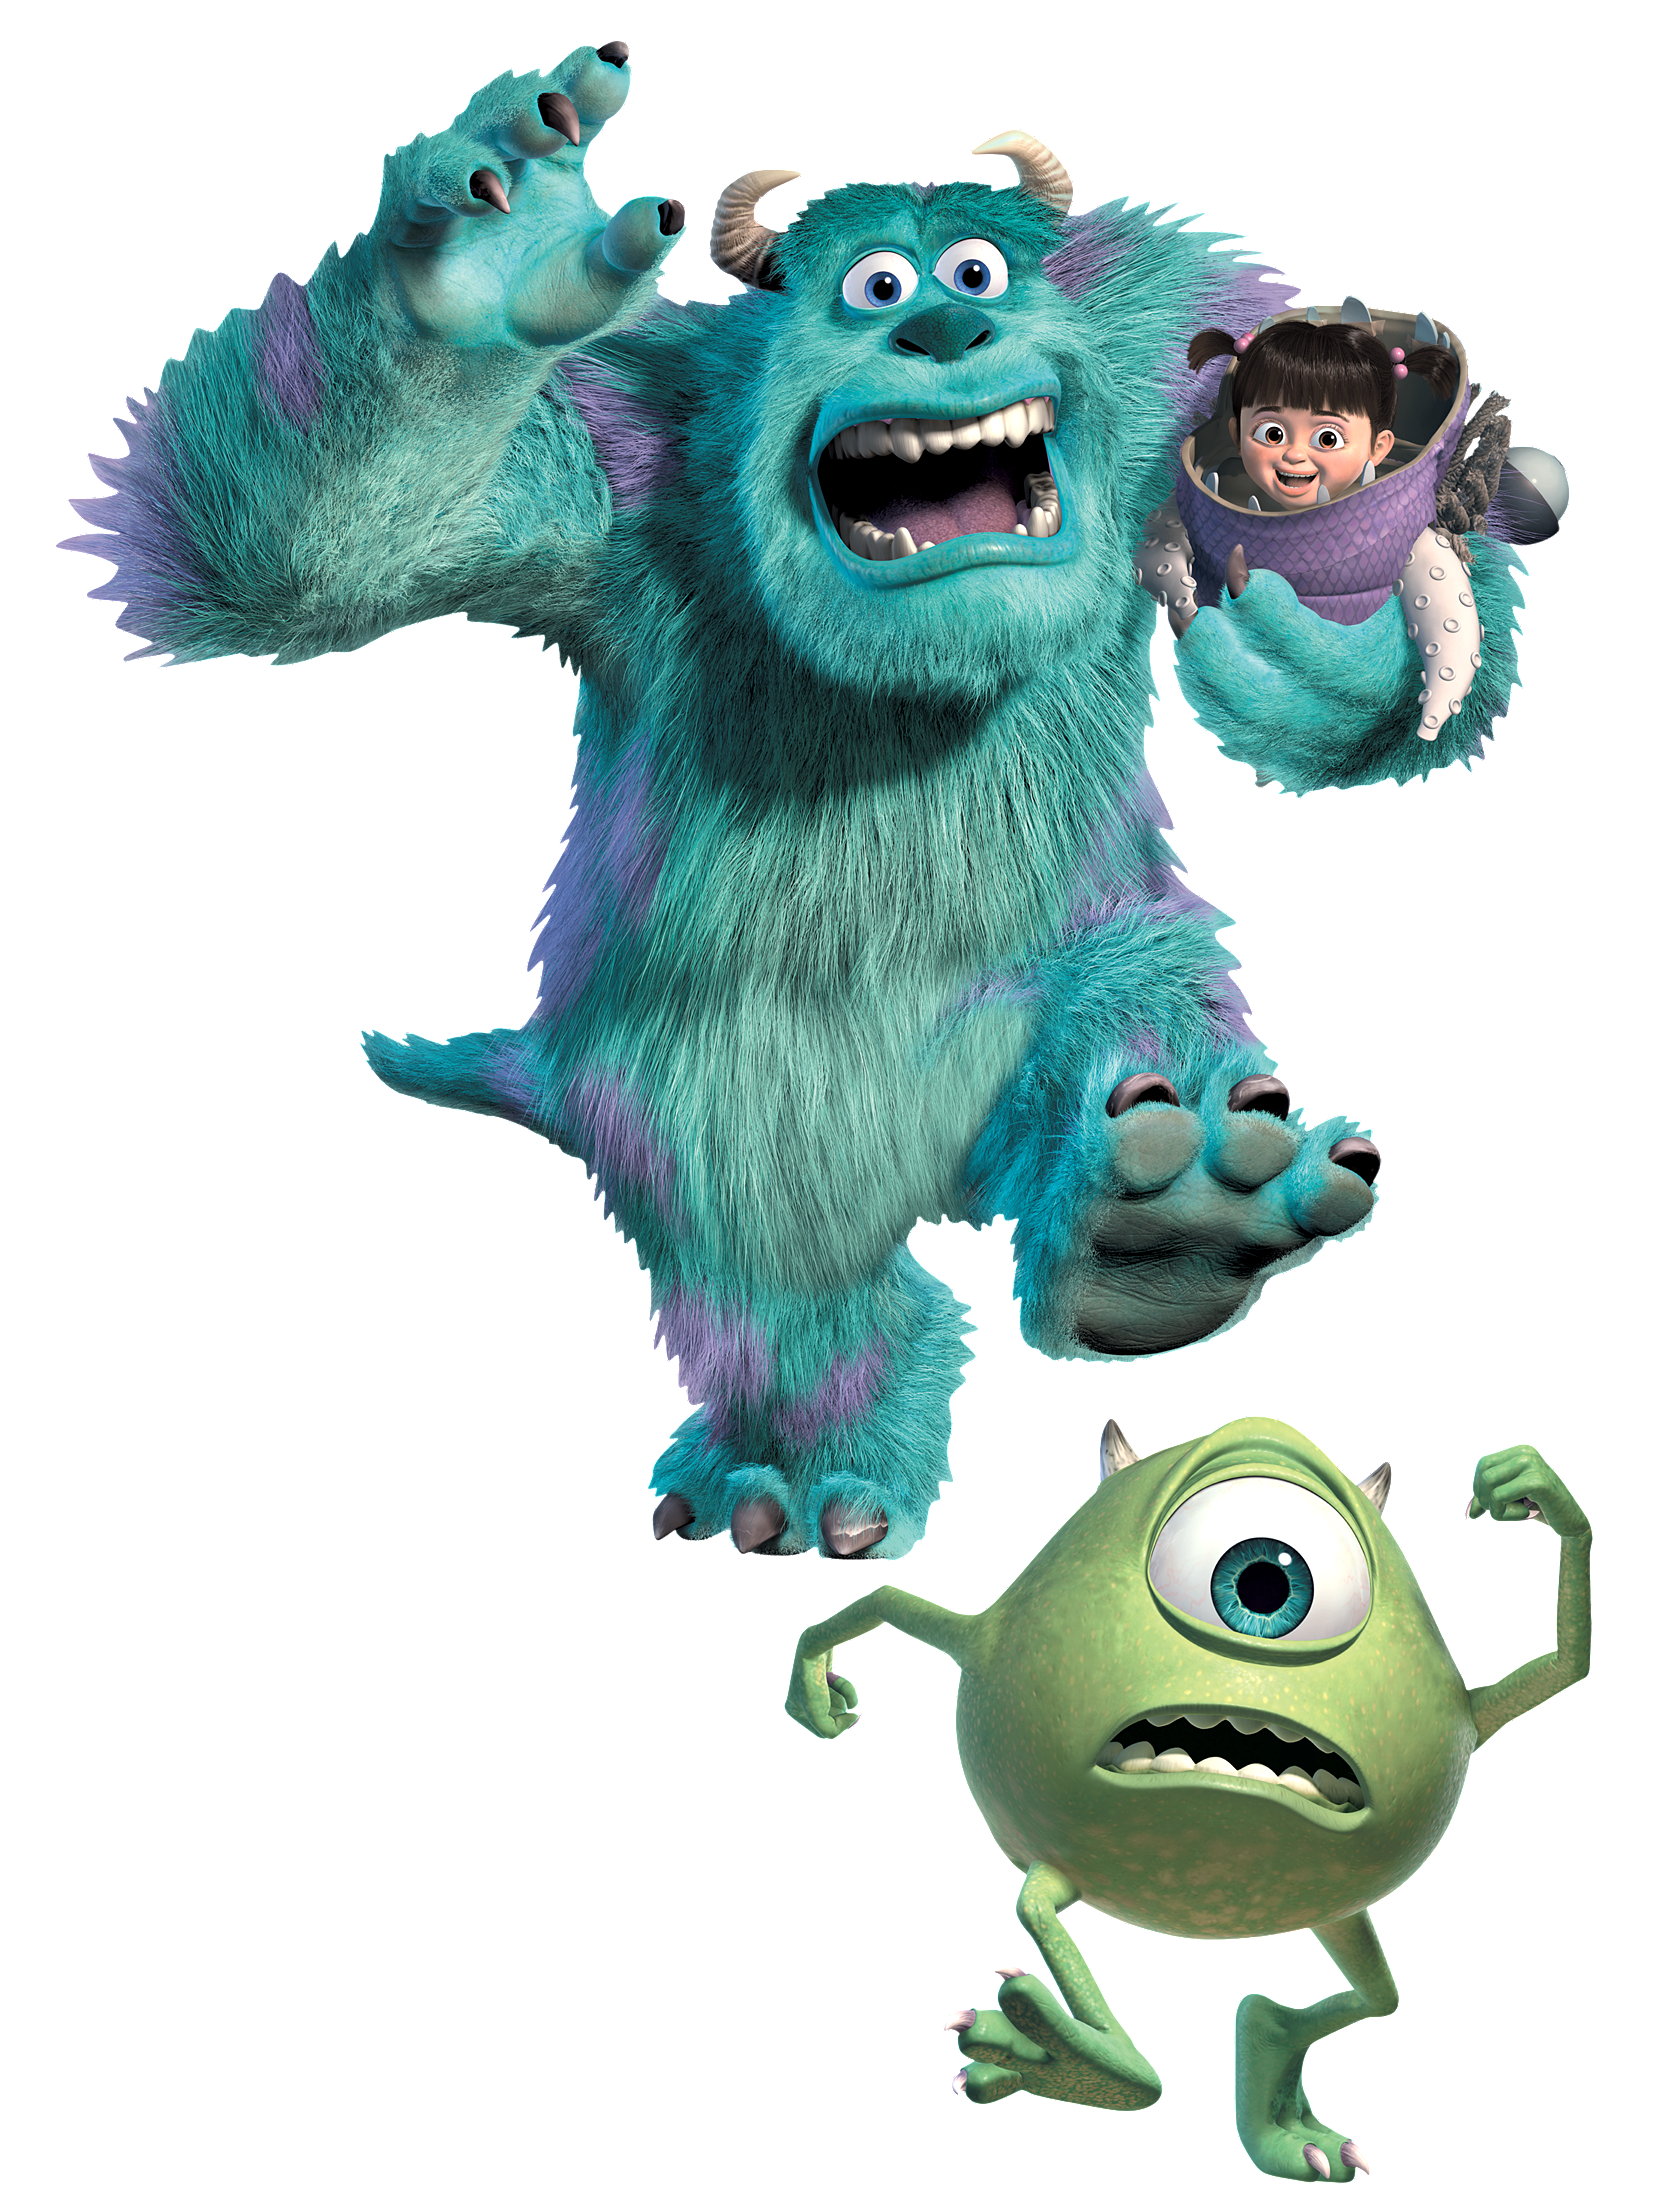 Uncategorized Sulley Mike And Boo boogallery disney wiki fandom powered by wikia sullyboomike mi